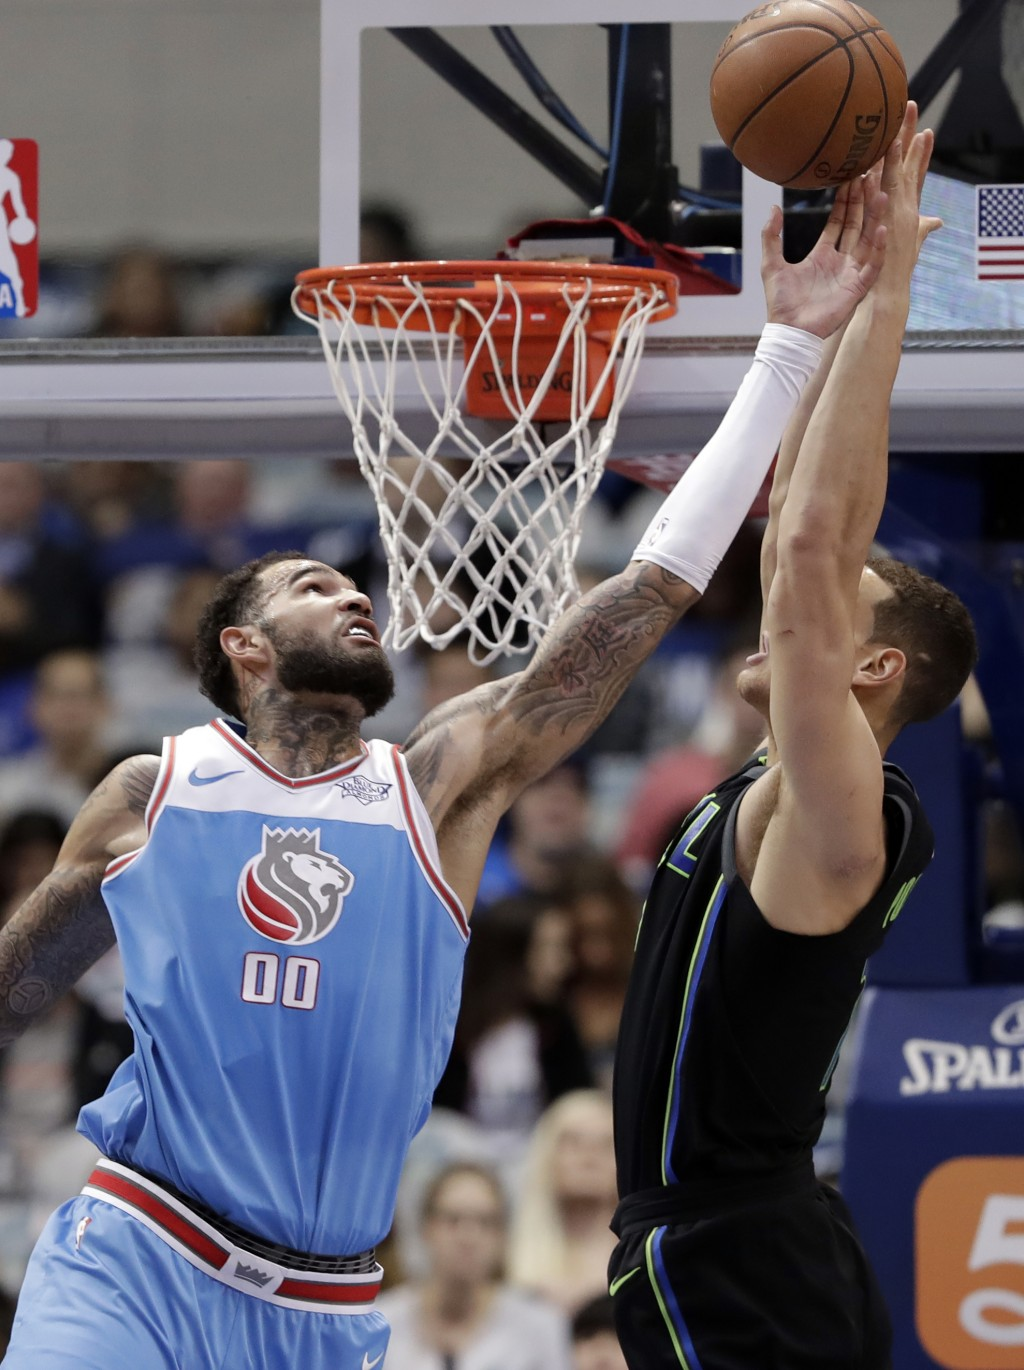 Sacramento Kings center Willie Cauley-Stein (00) disrupts a pass to Dallas Mavericks forward Dwight Powell (7) on an dunk attempt in the first half of